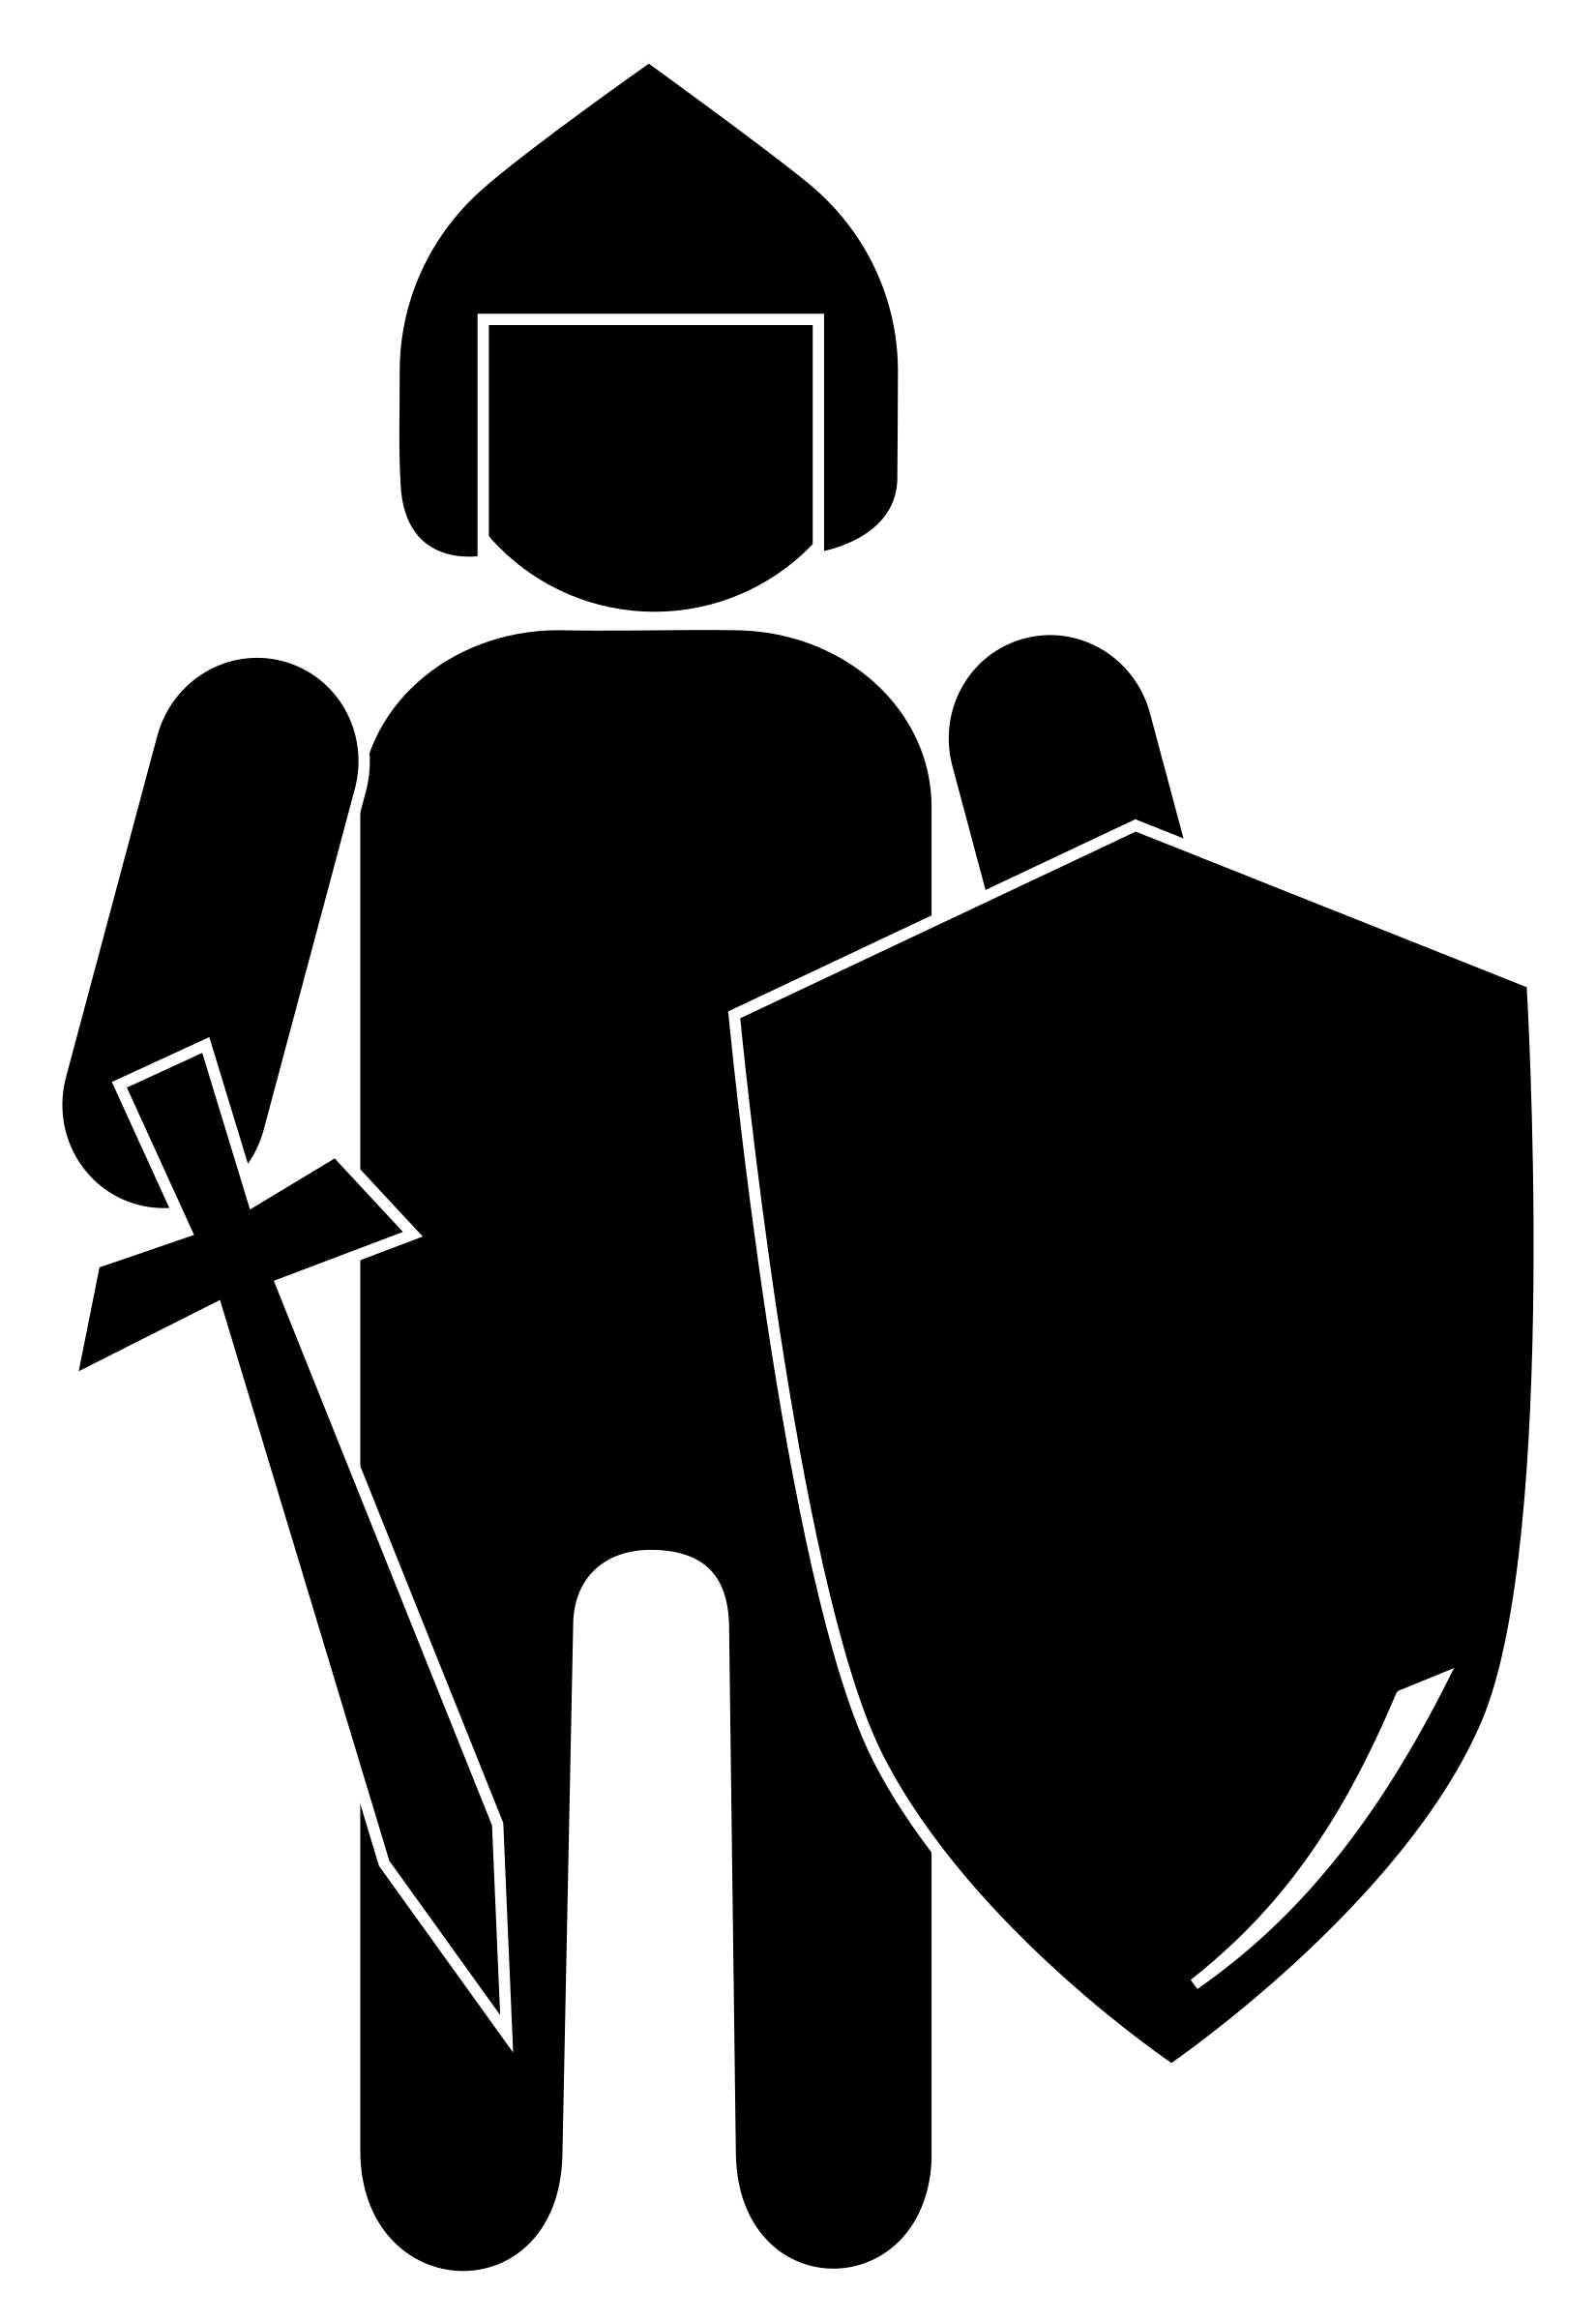 Clipart sword silhouette. Knight big image png